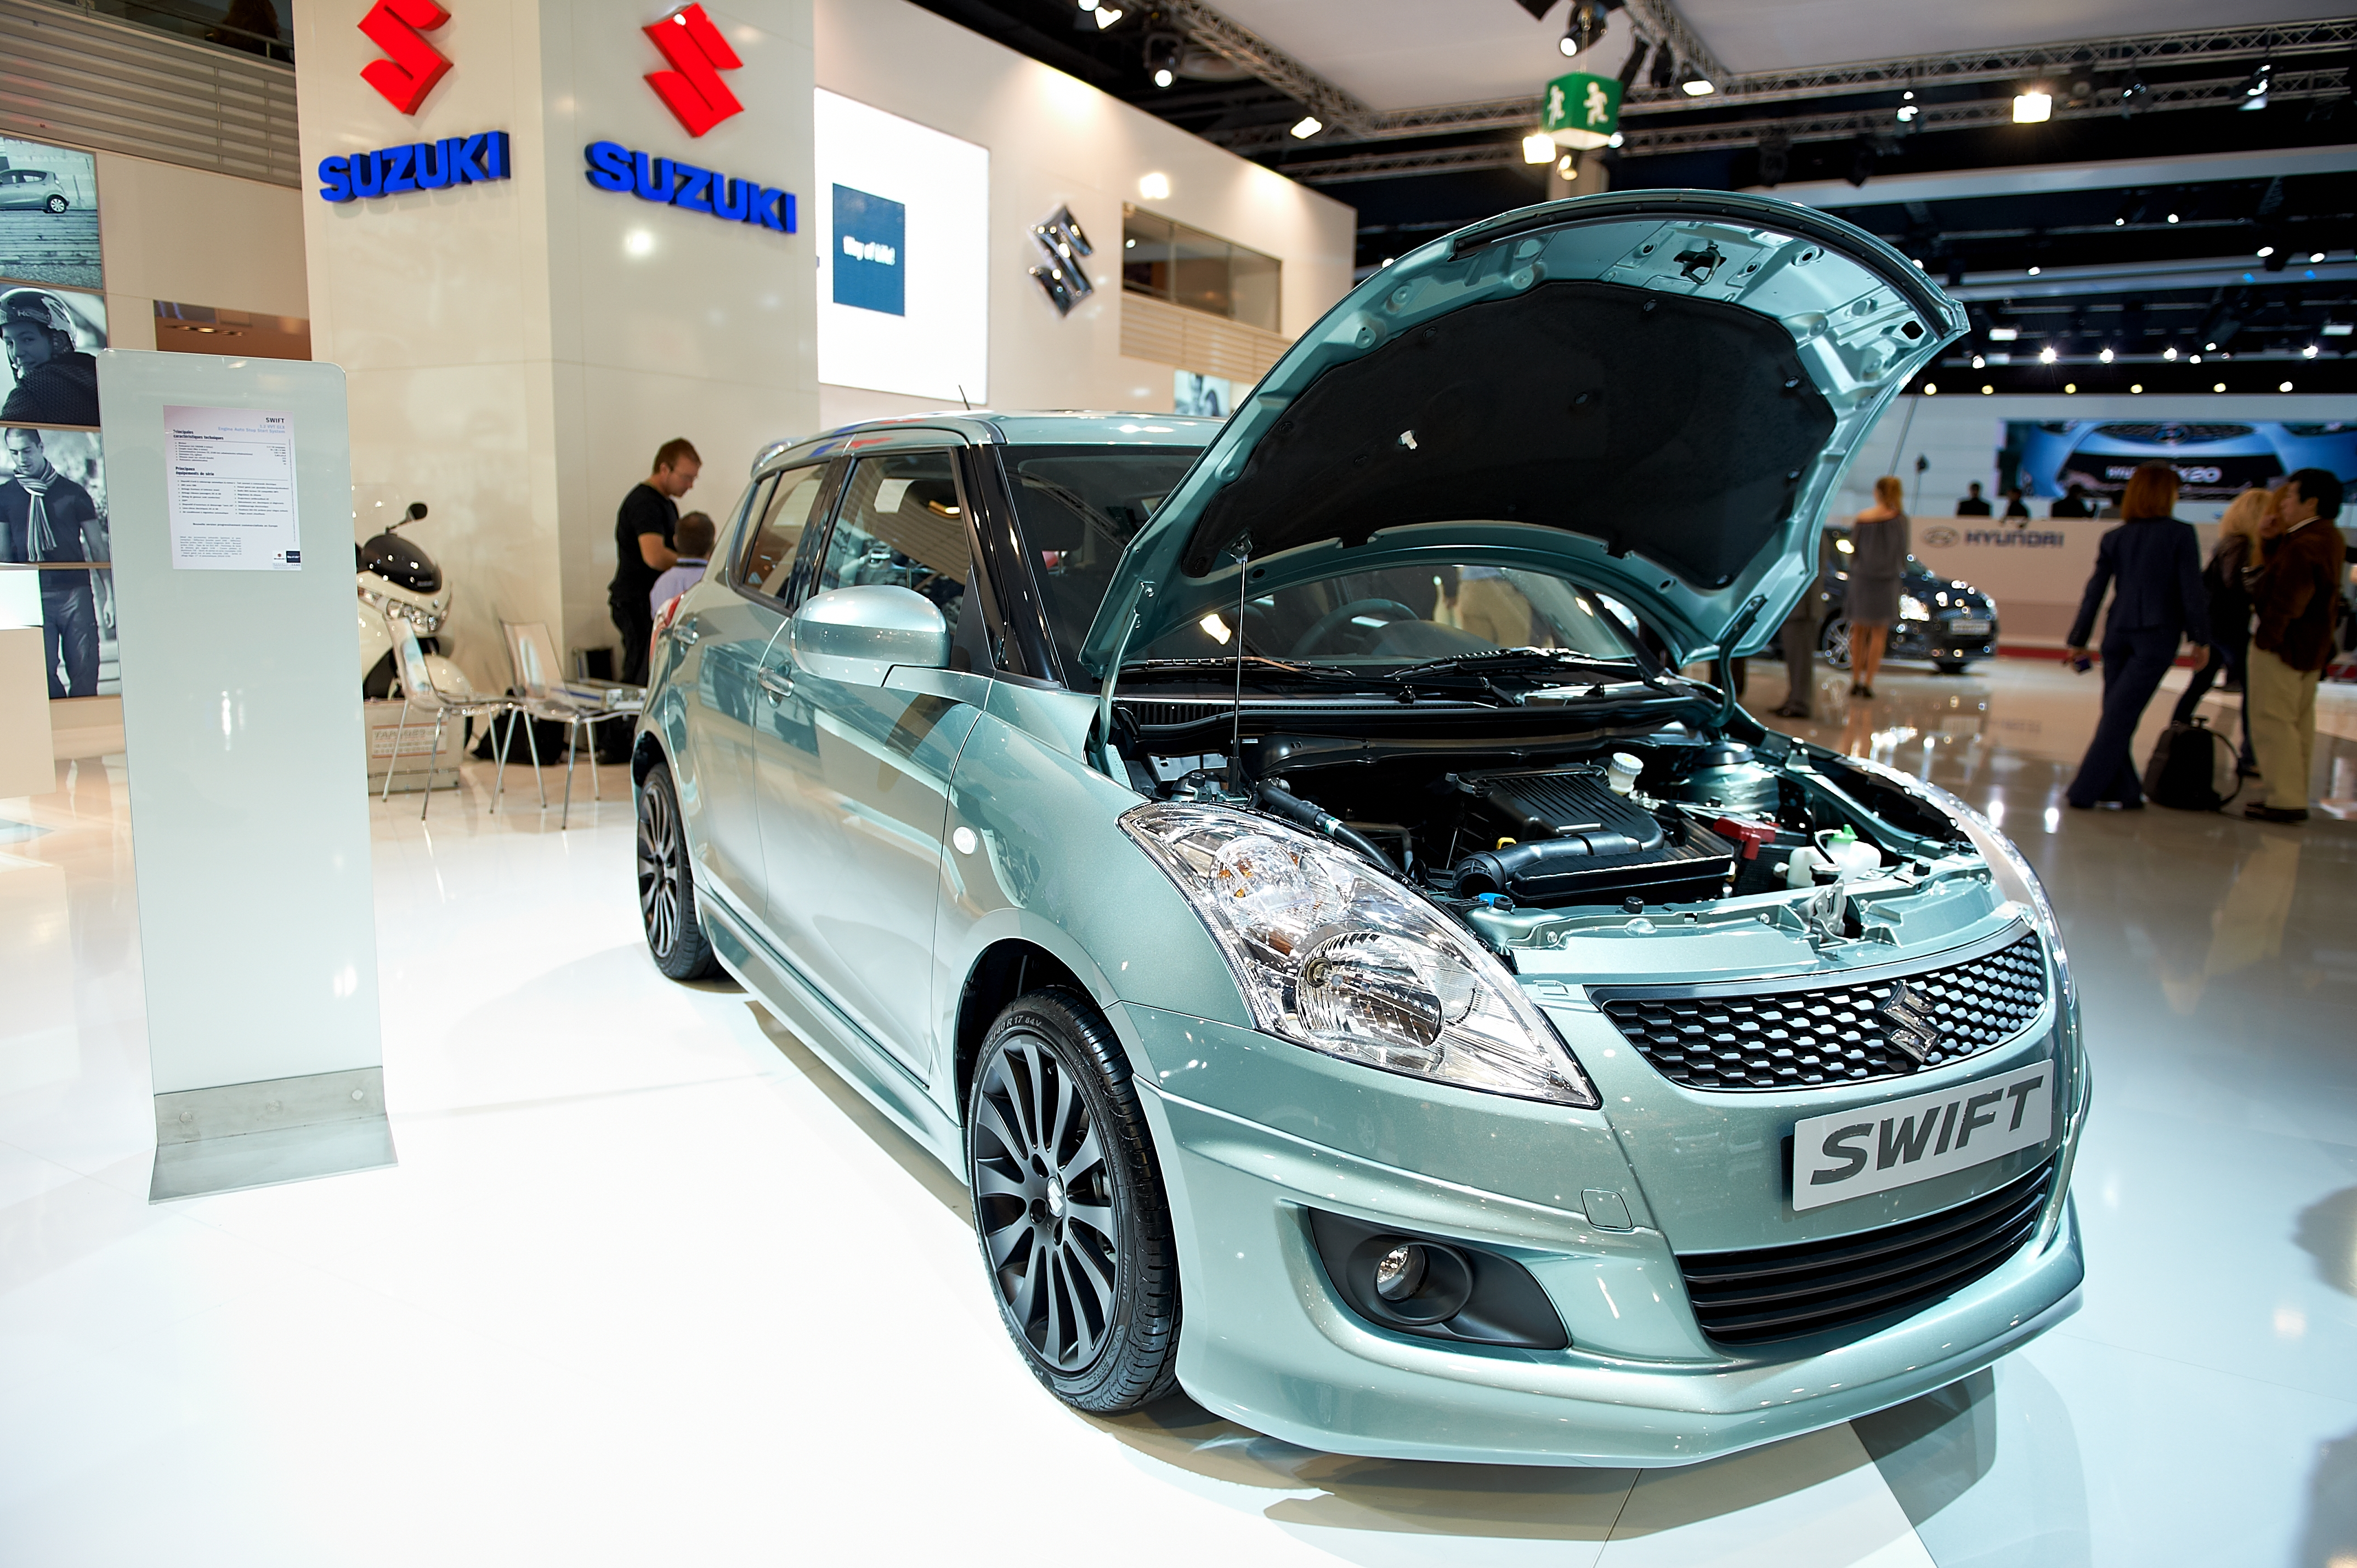 Suzuki SWIFT VVT GLX 1.2 | Flickr - Photo Sharing!